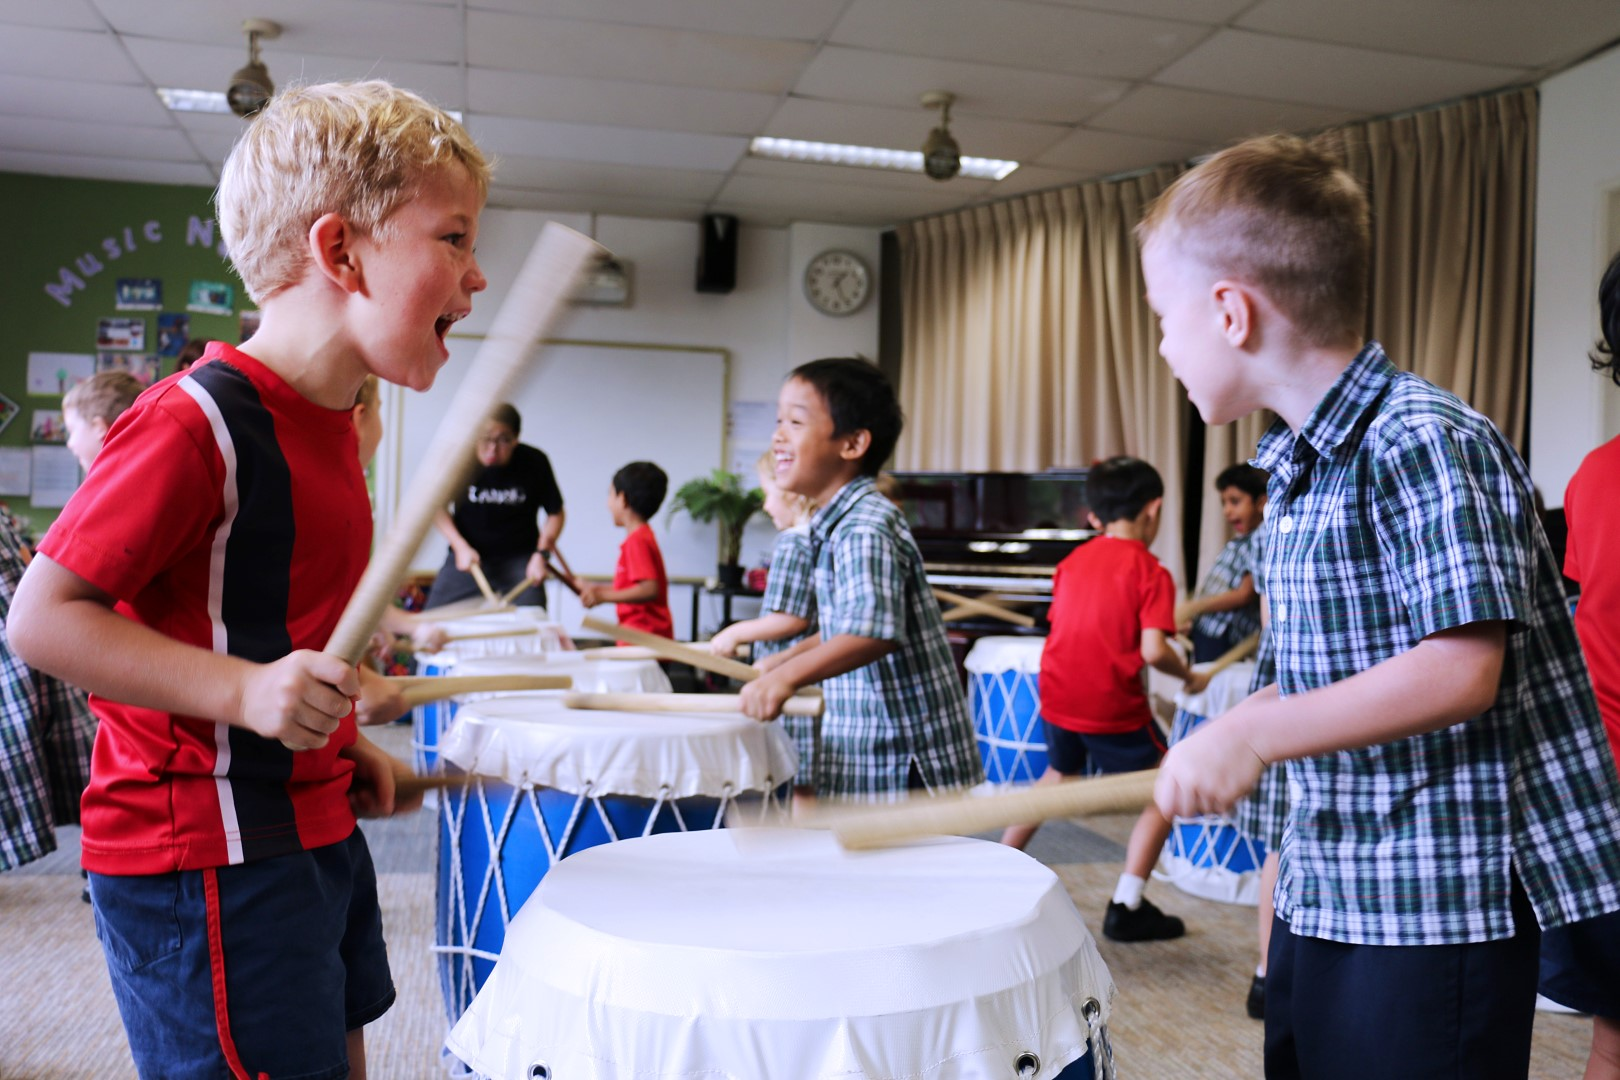 Taiko Drum Making and Introduction, Infant & Senior Schools